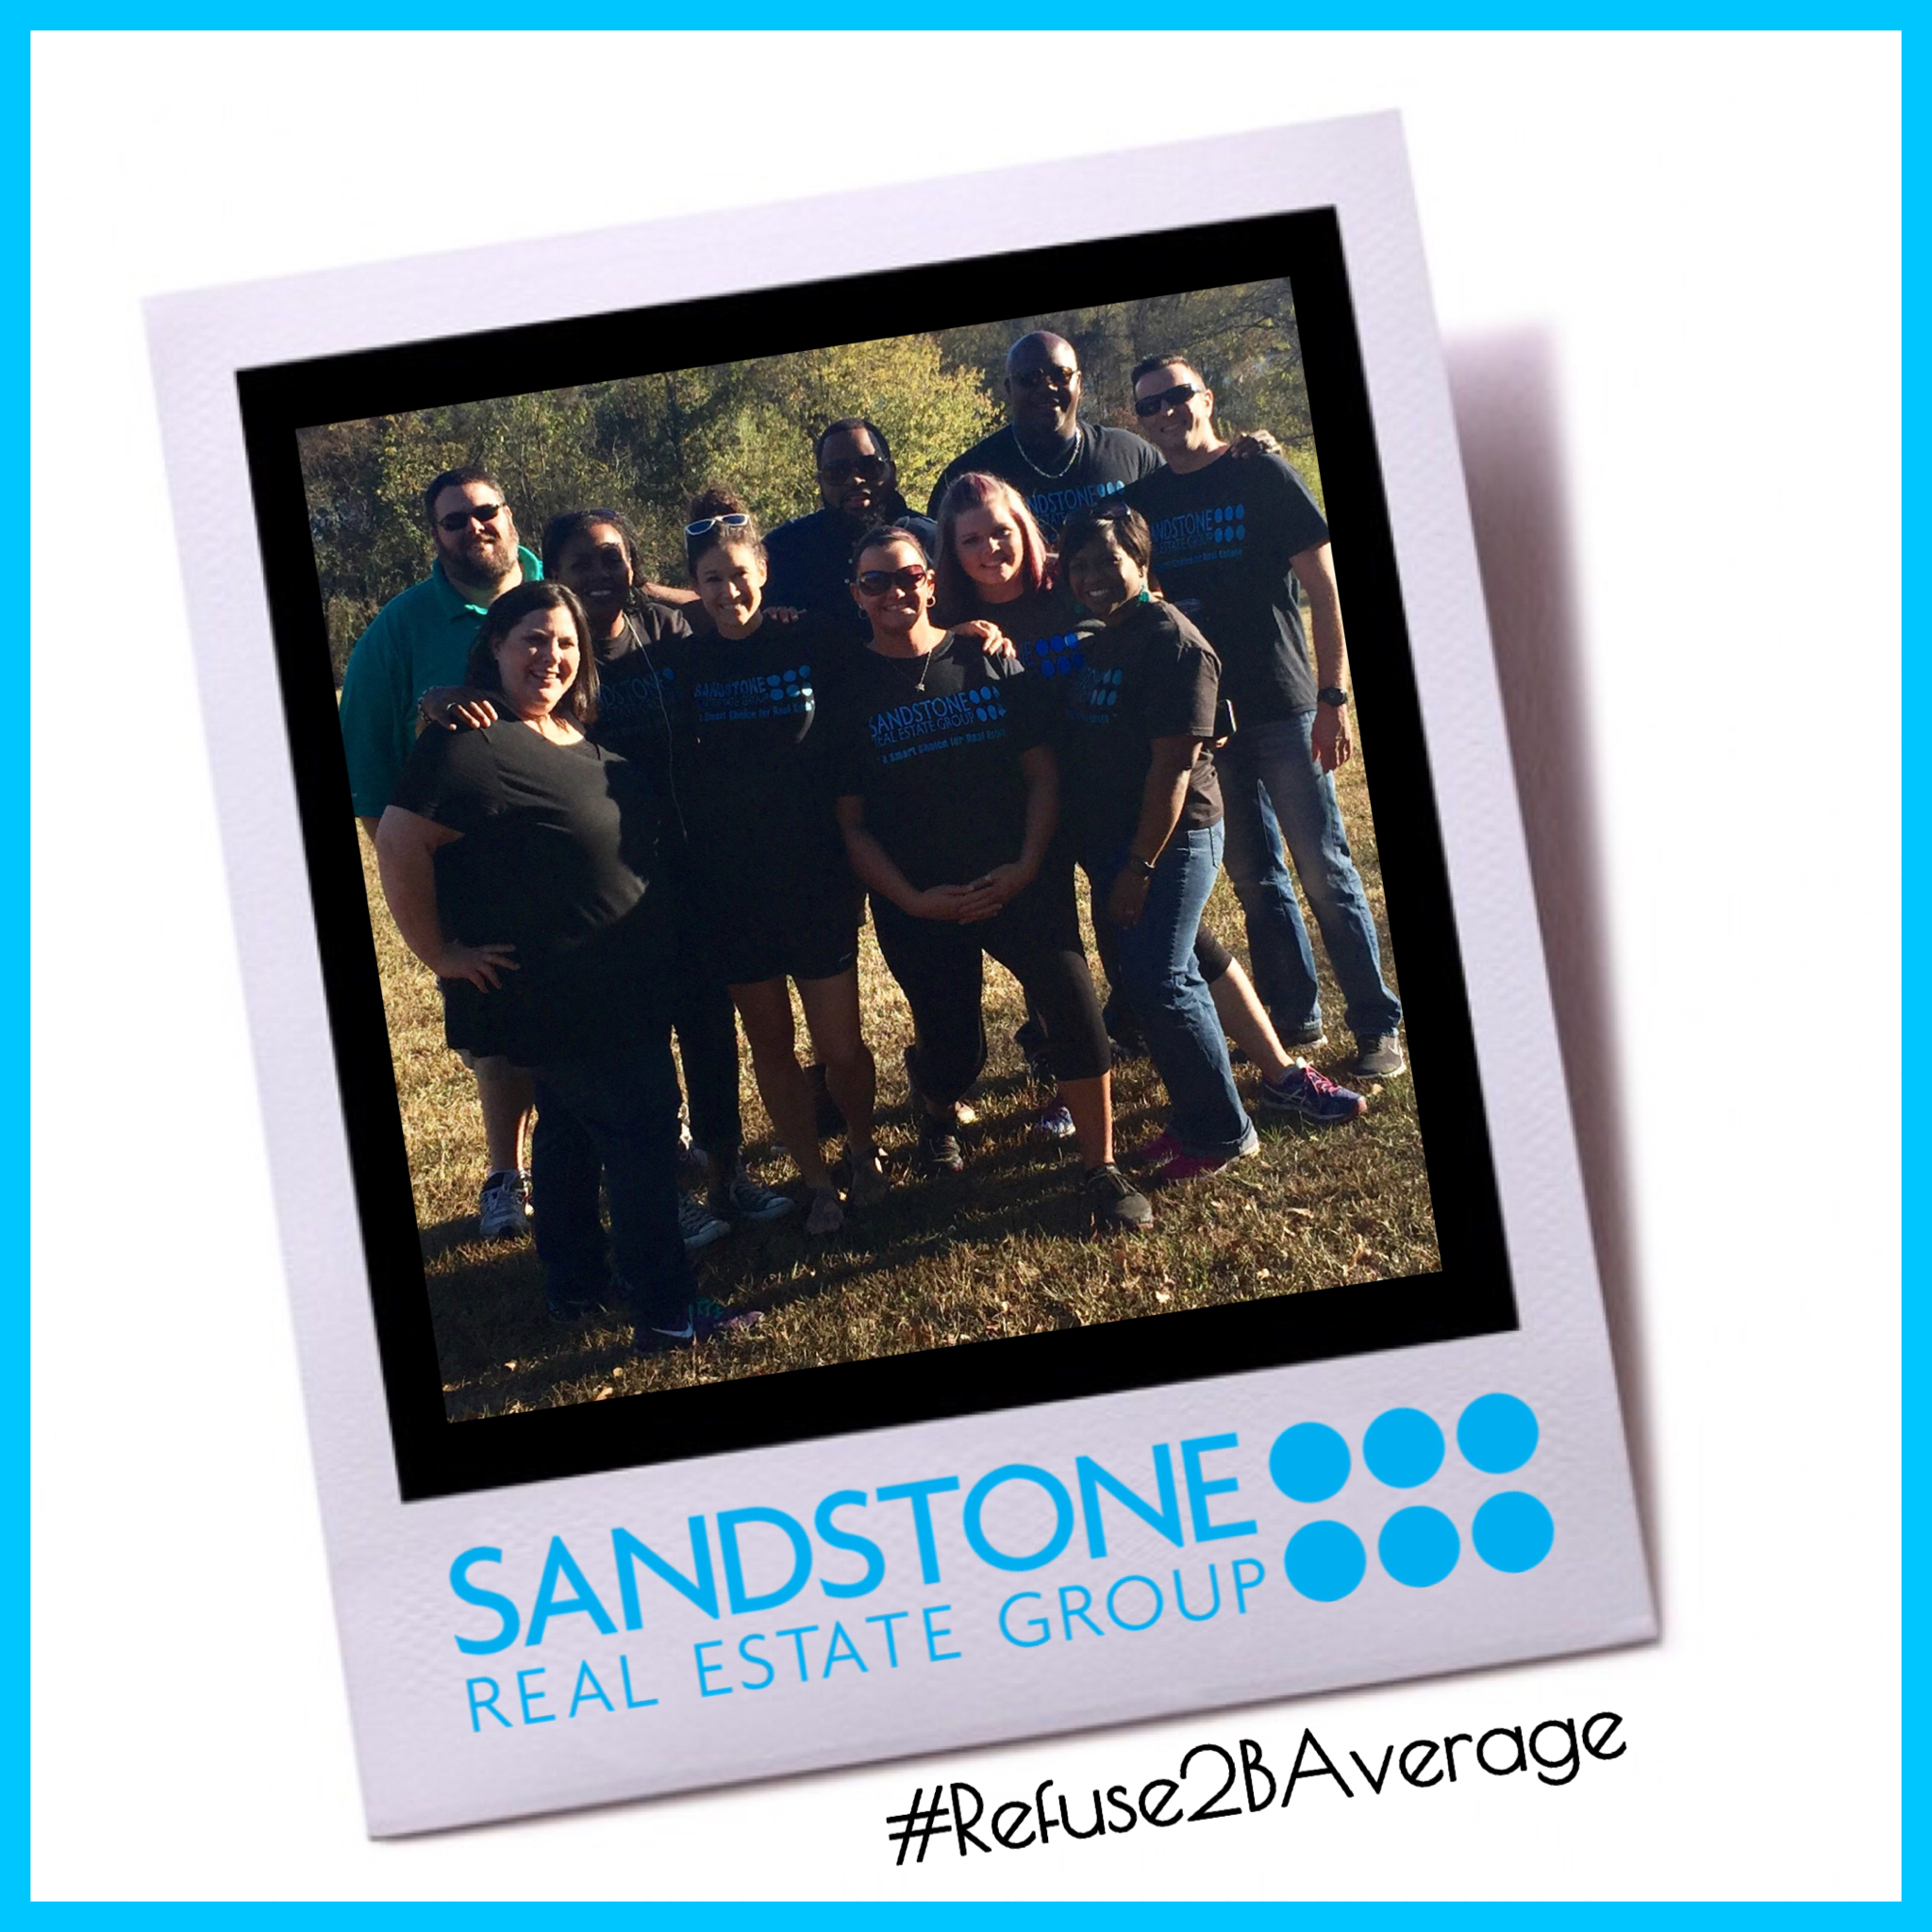 Sandstone Real Estate Group - #Refuse2BAverage